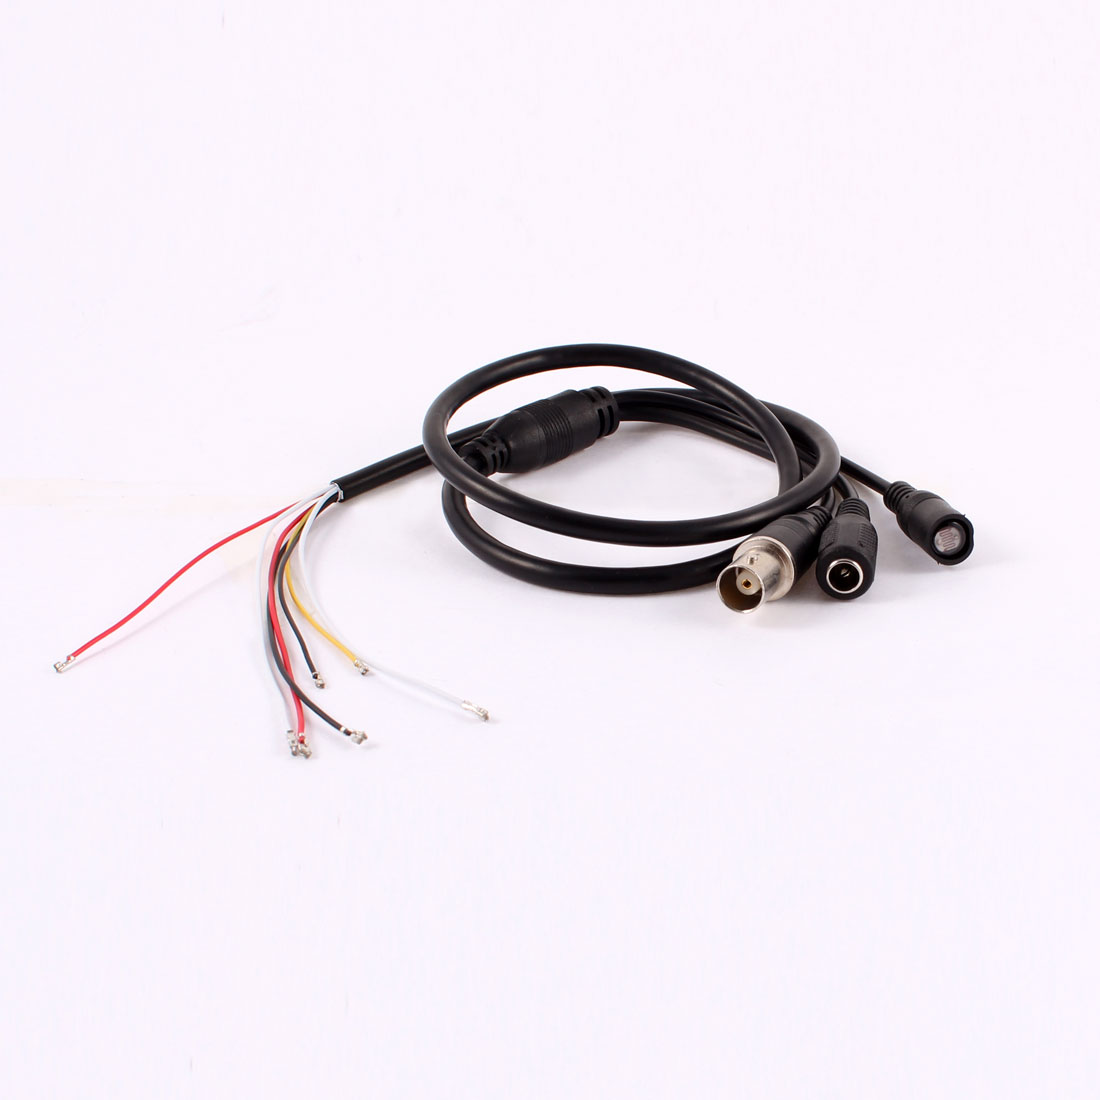 Photodetector BNC Female Video Out 5.5x2.1mm DC Jack Power Input Cable Black 79cm